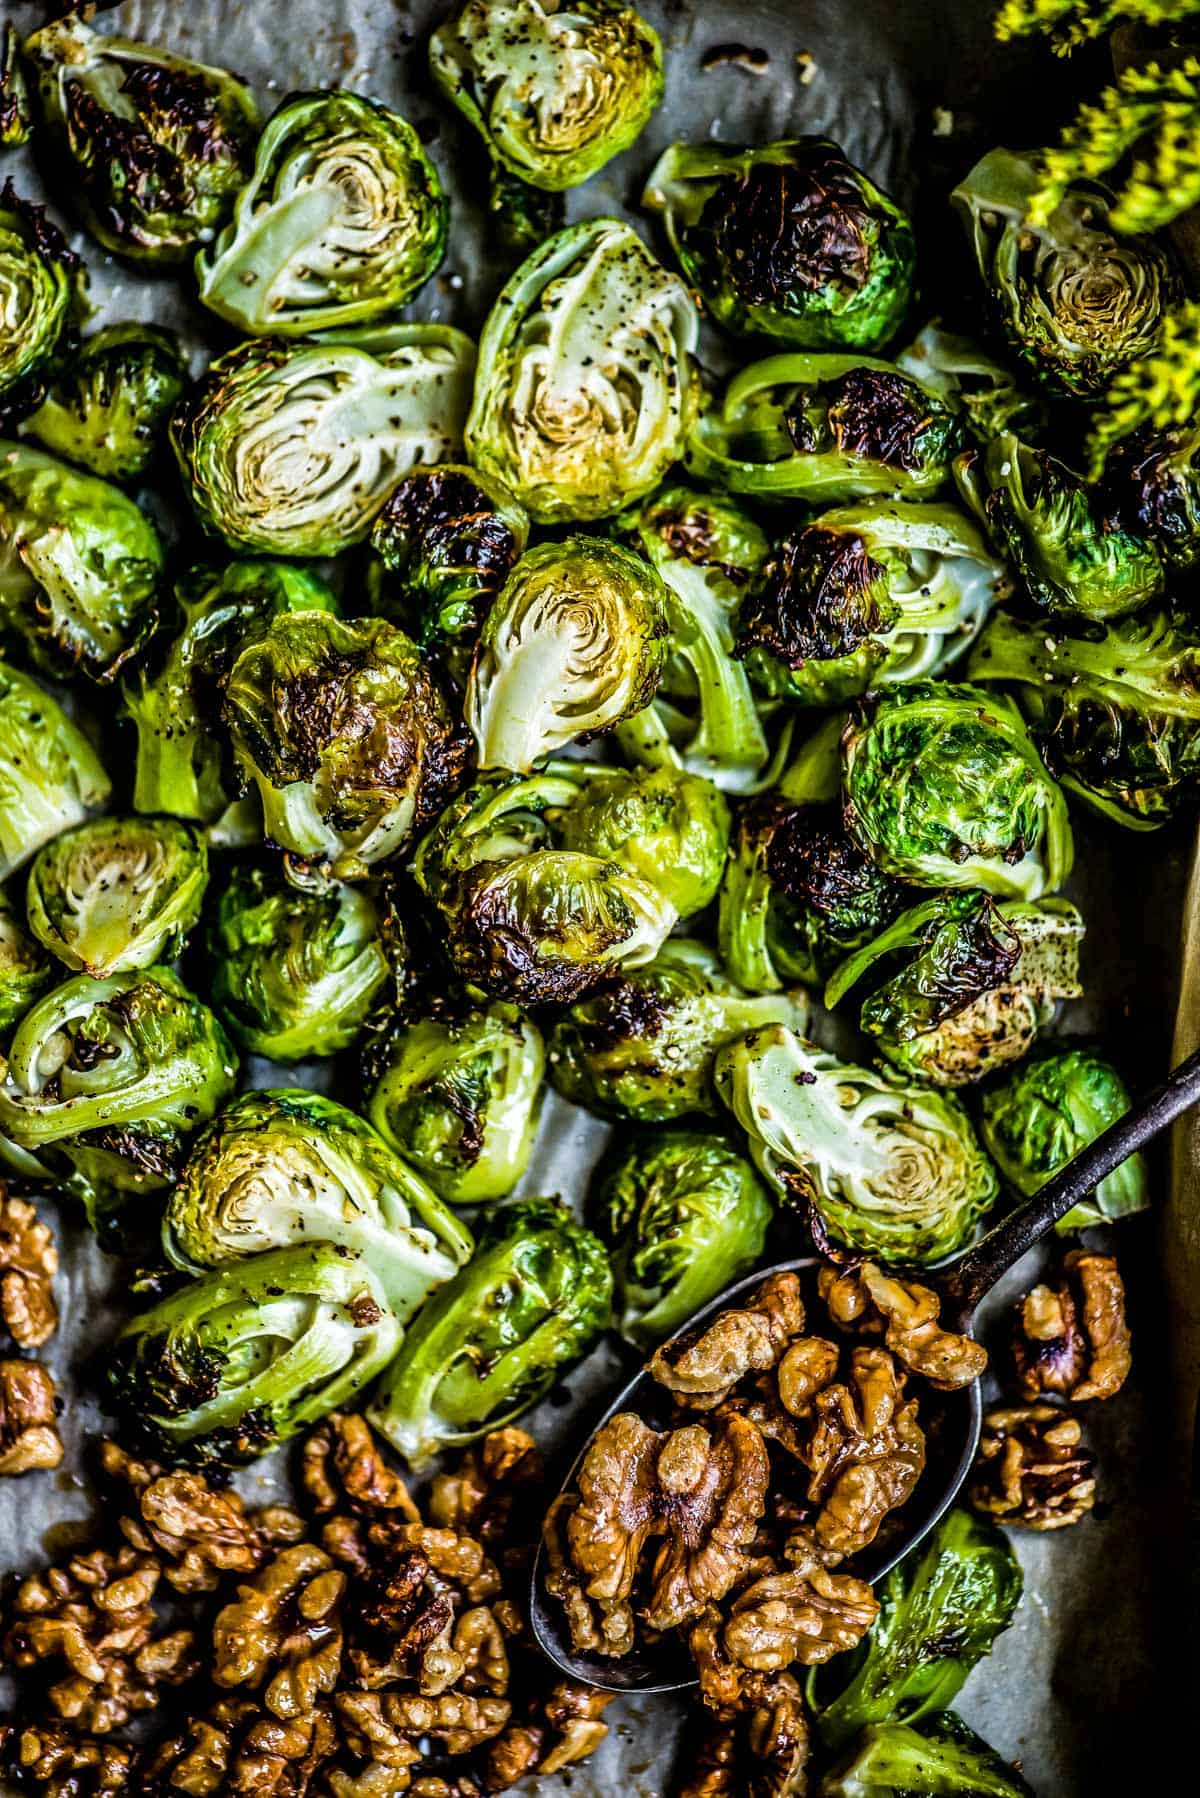 Brussels sprouts with glazed walnuts are the perfect side dish